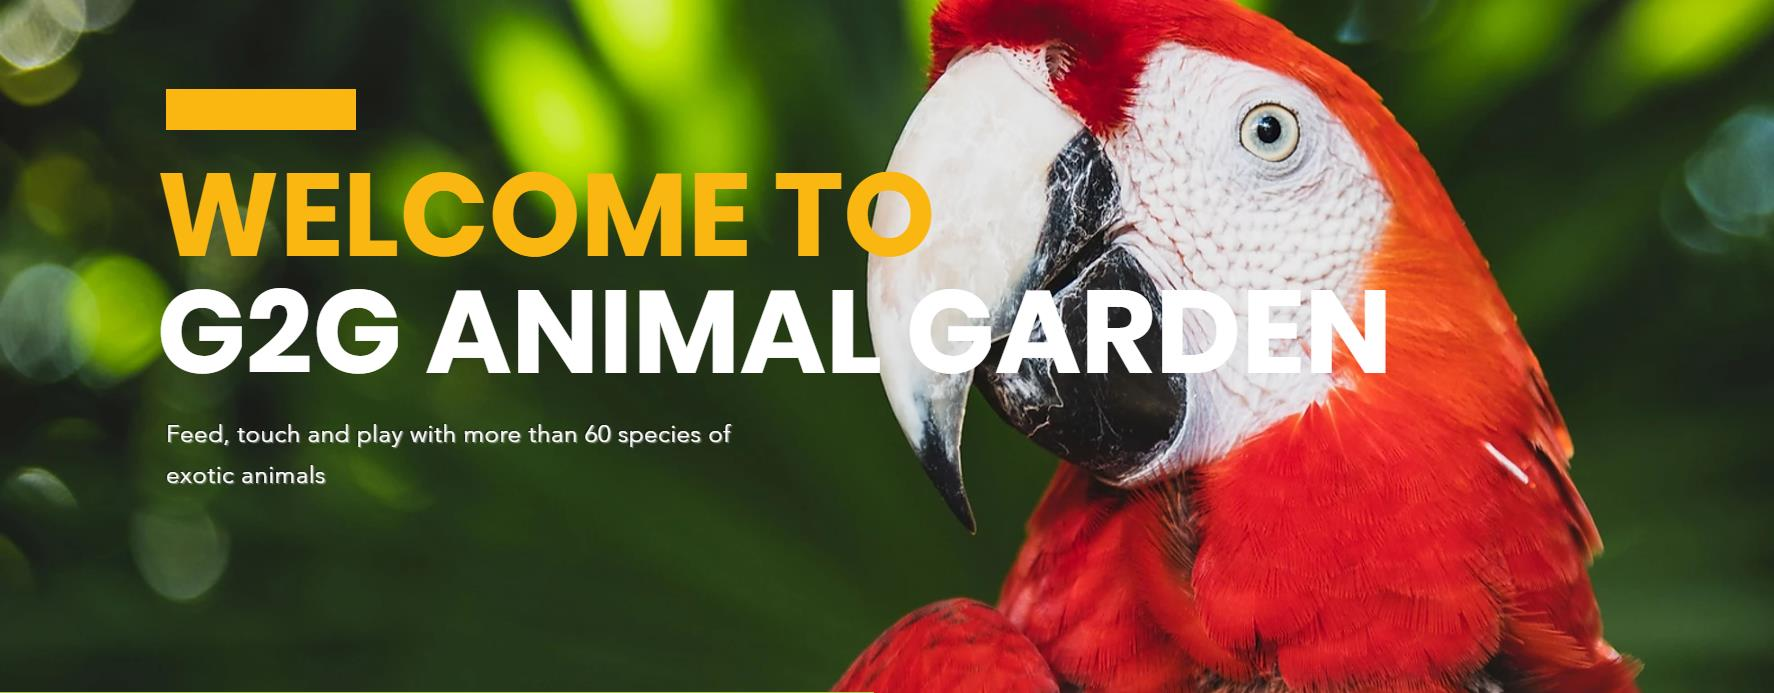 G2G Animal Garden Ticket